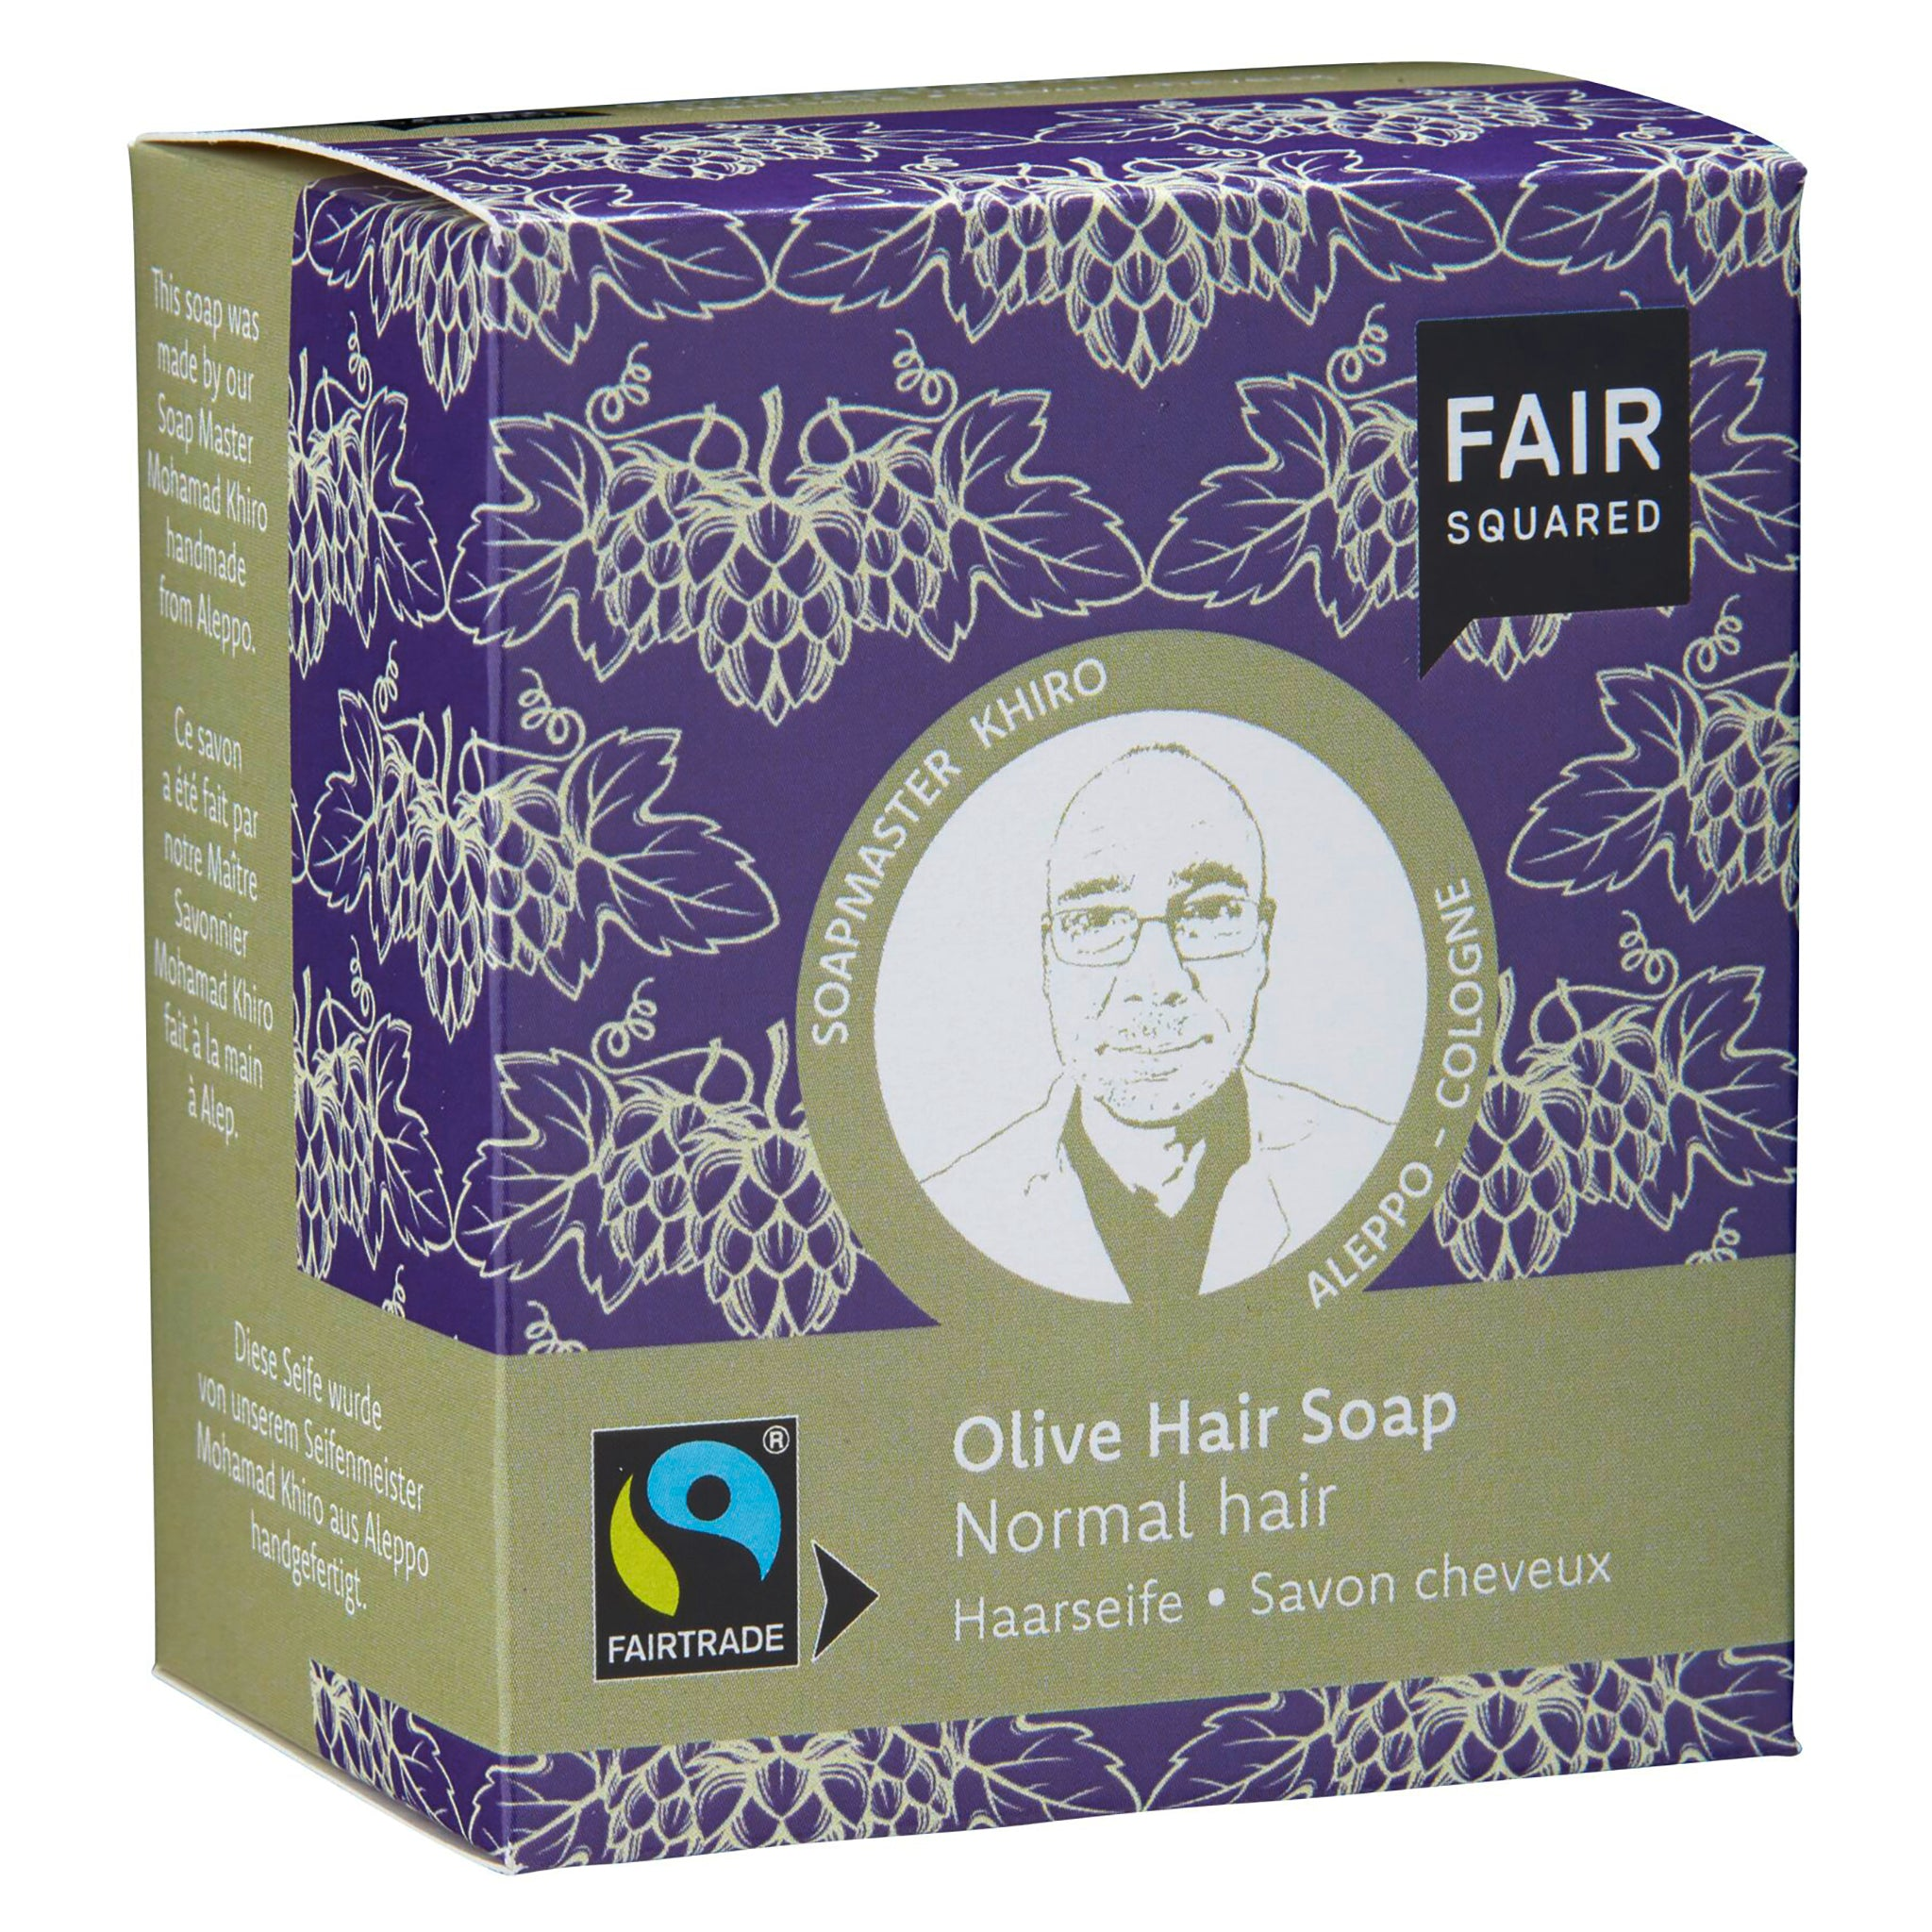 Olive Hair Soap with Cotton Soap Bag - For Normal Hair